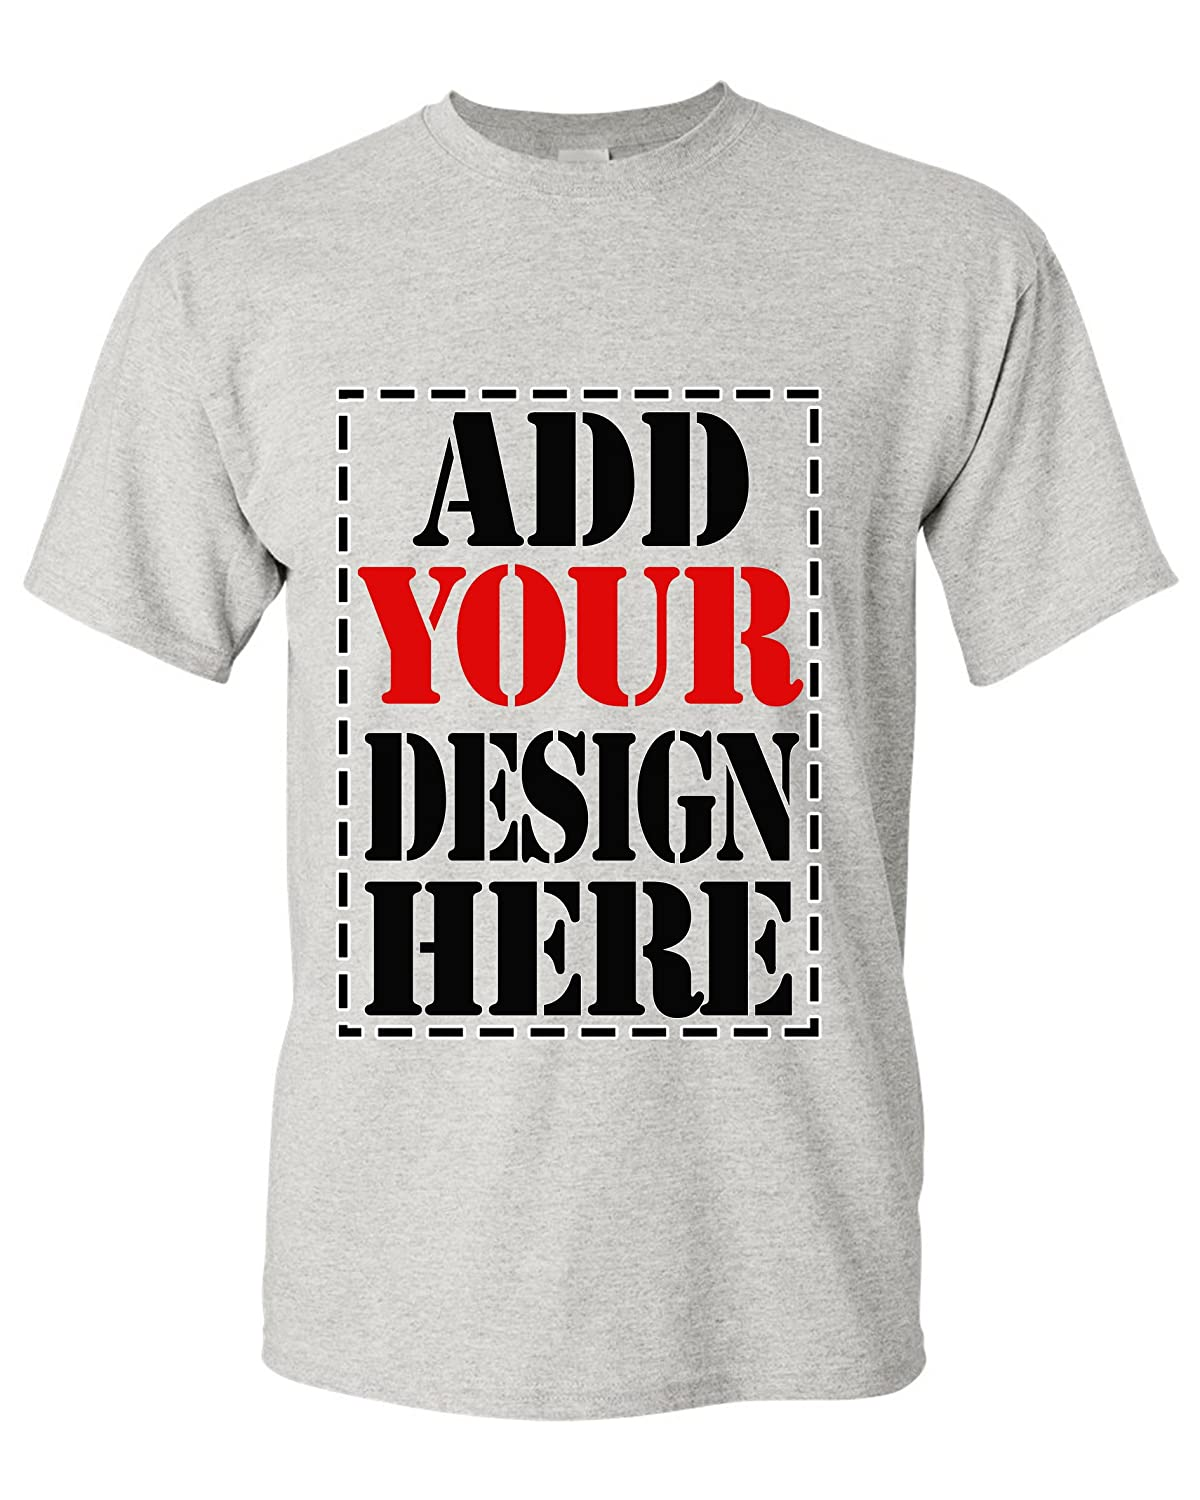 c510209095c55a Create custom t-shirts and personalized shirts at Tee Miracle. Send us a  message if you have questions or special requests about your design idea.